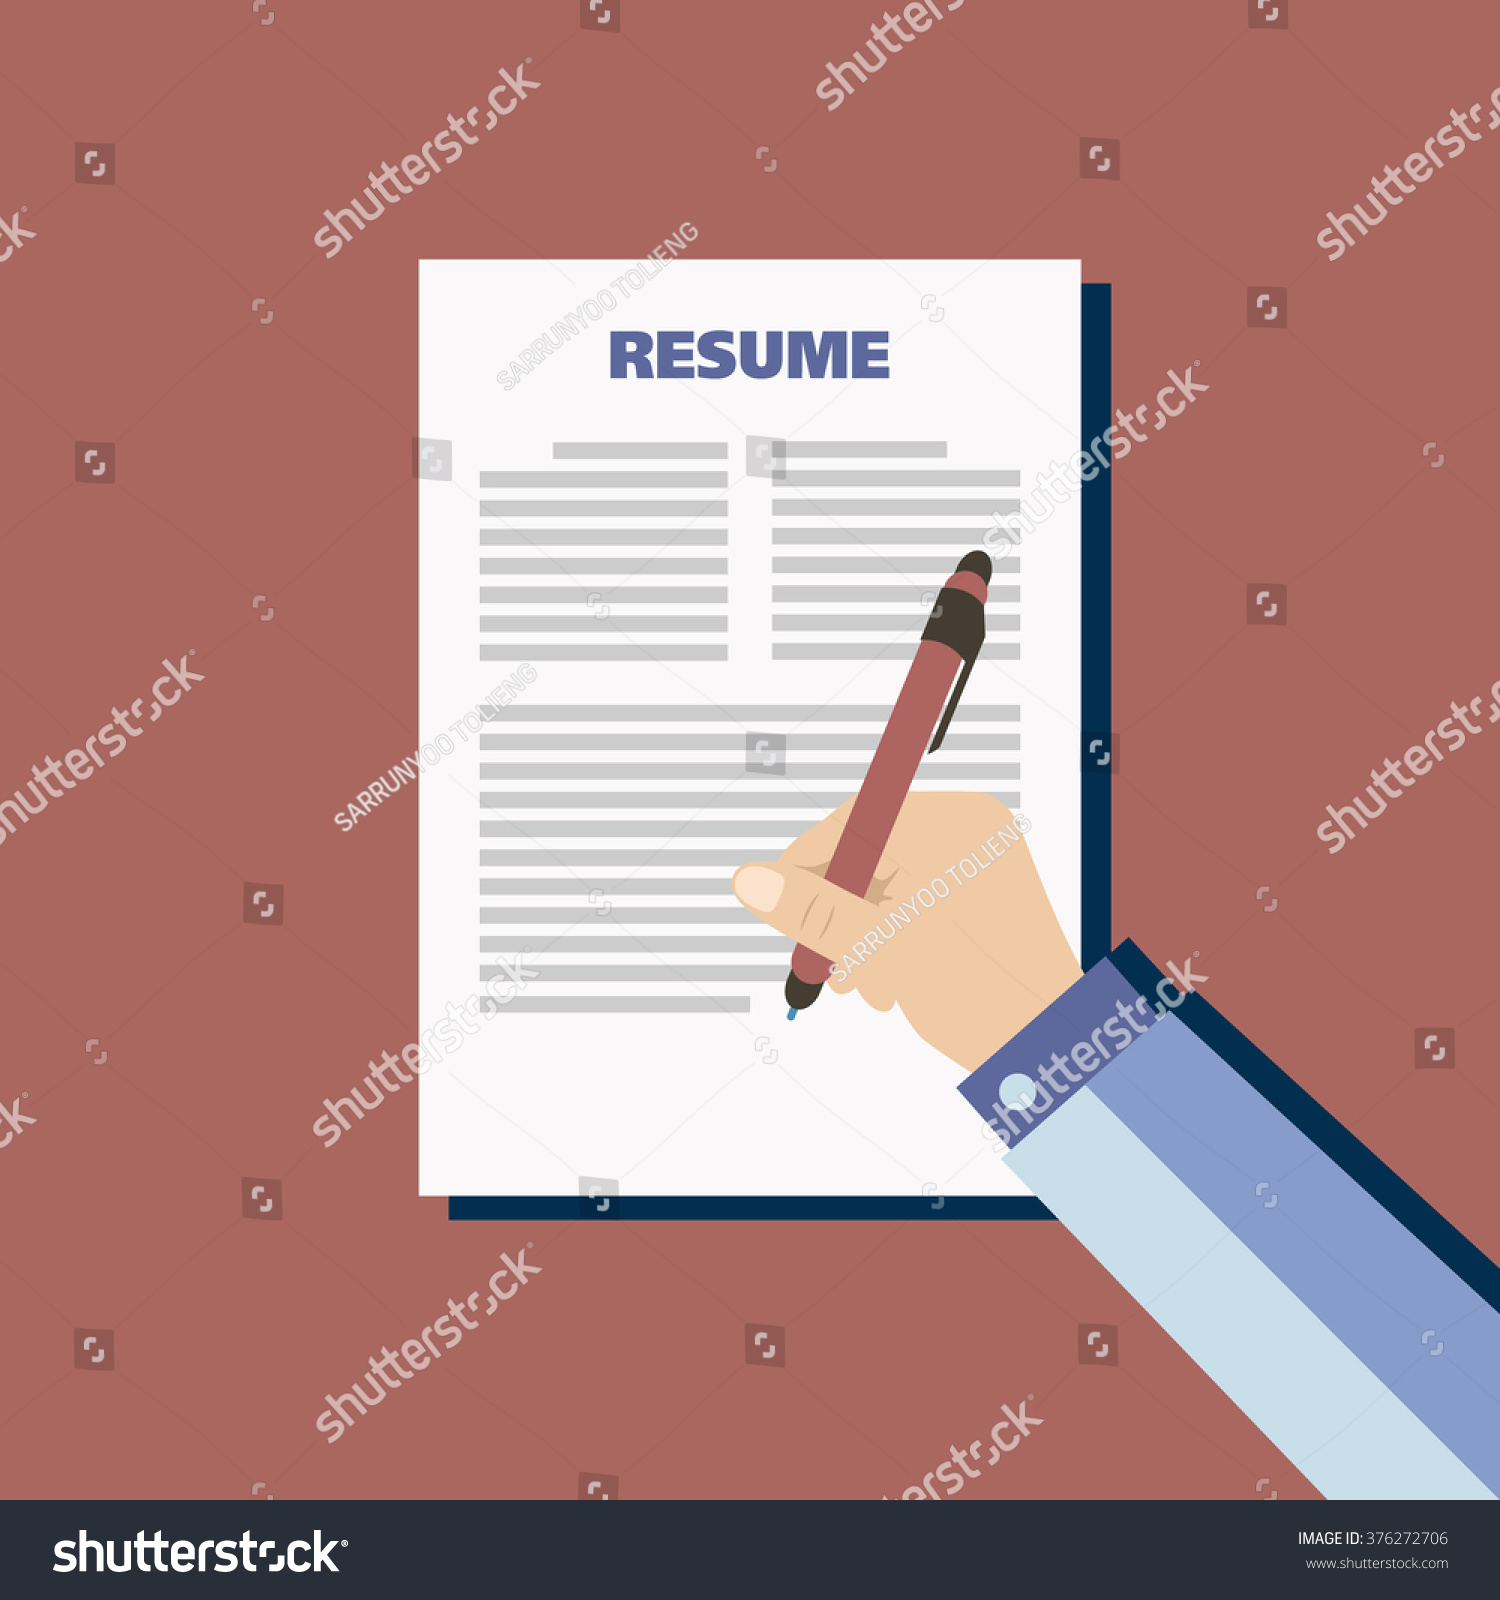 Business Red Background Resume Vector Stock Vector Royalty Free